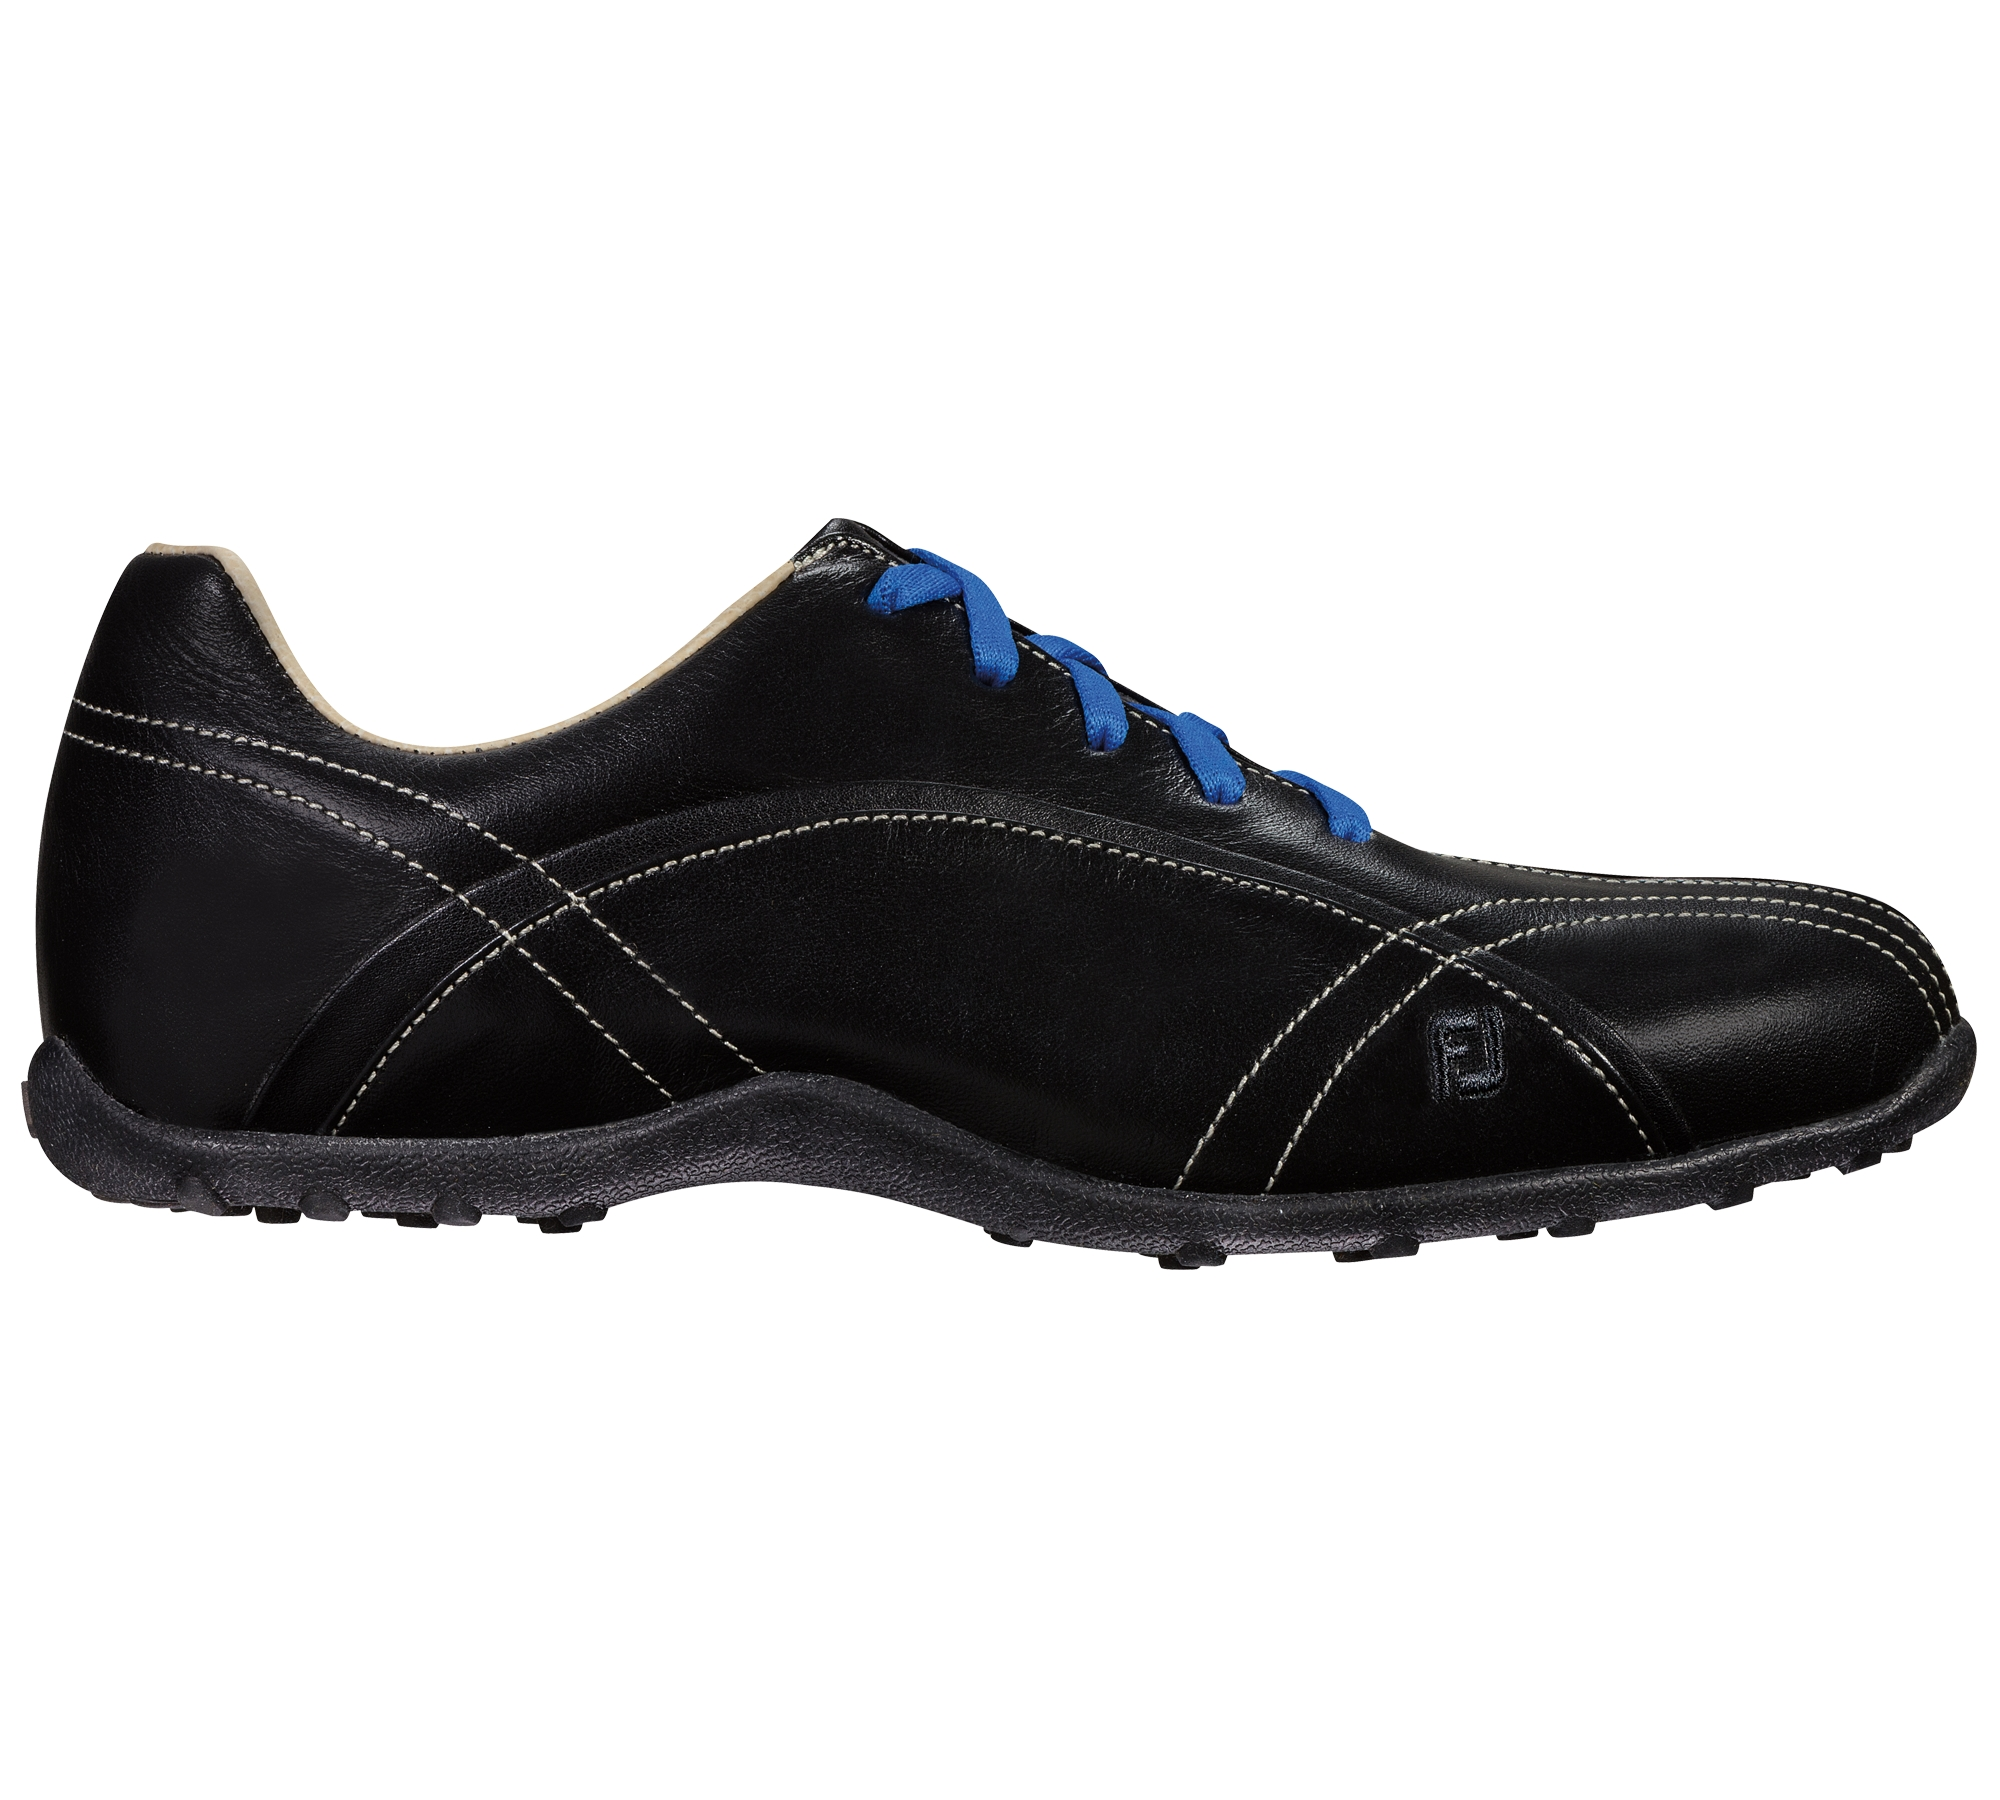 FootJoy Women's Casual Collection Black Leather Golf Shoe - FJ# 97703